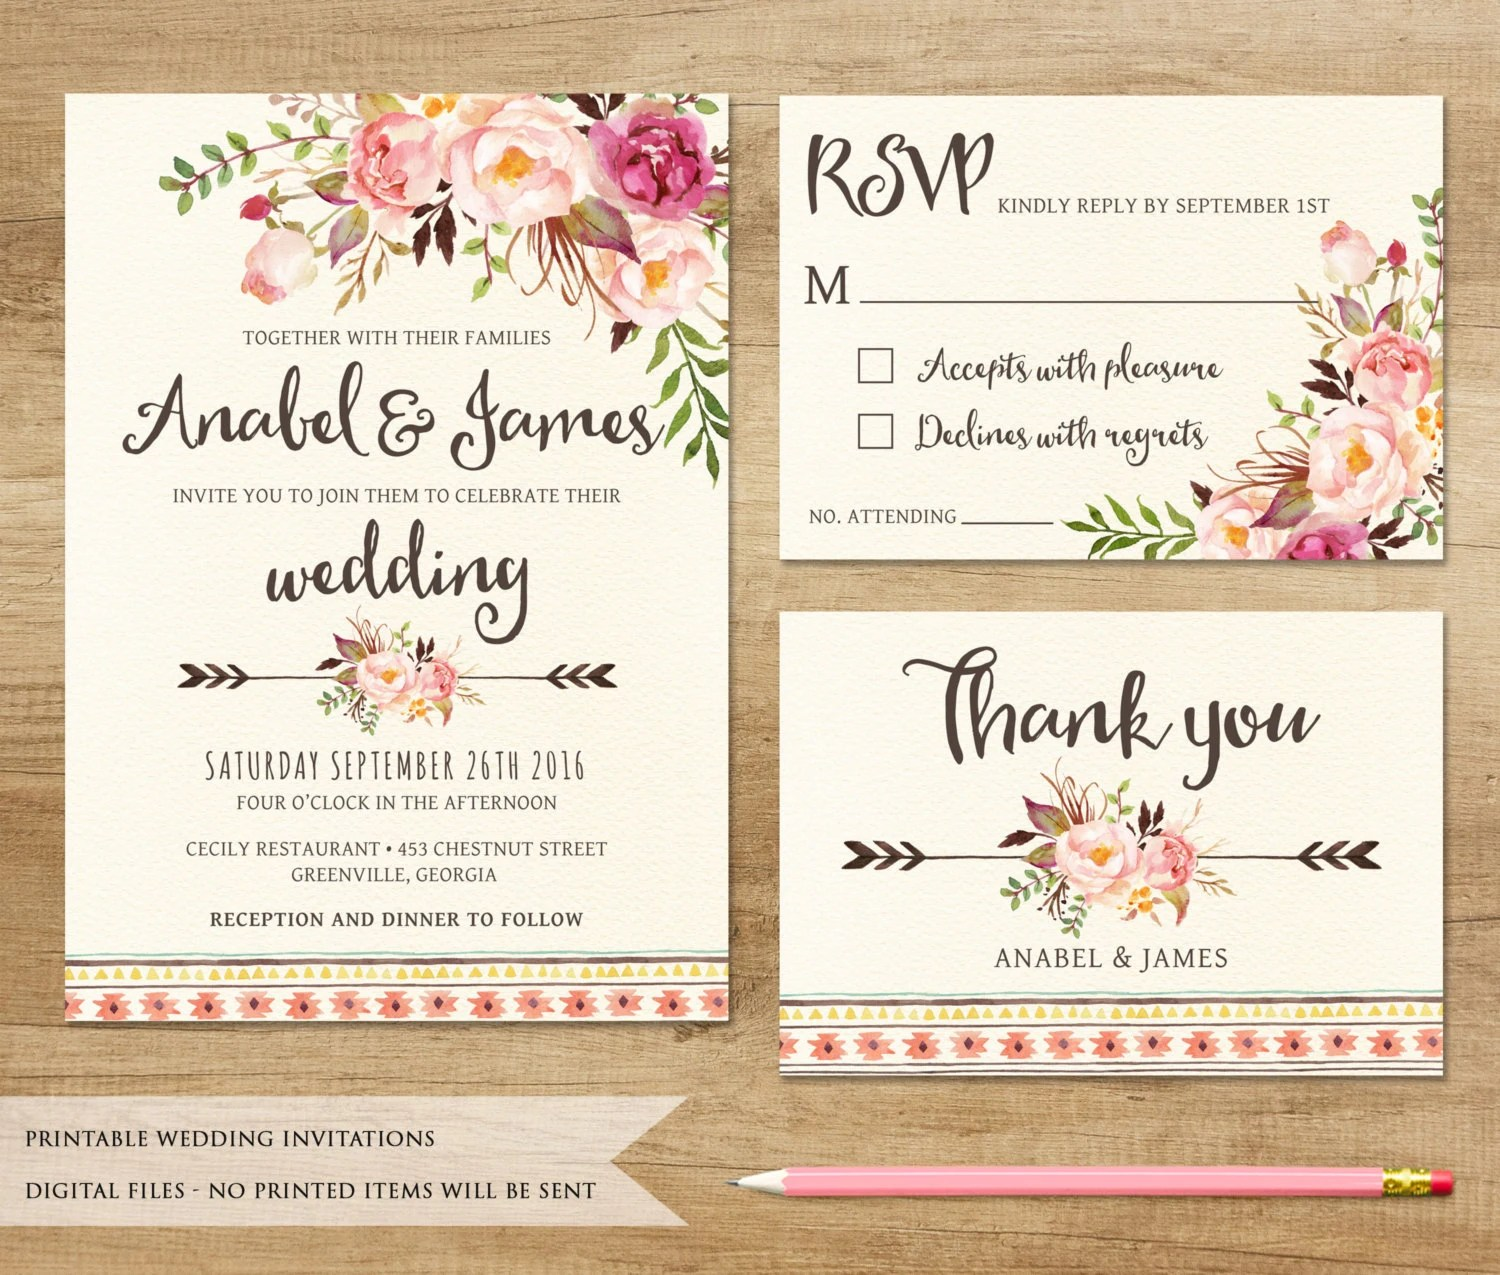 Printable Invitations Wedding